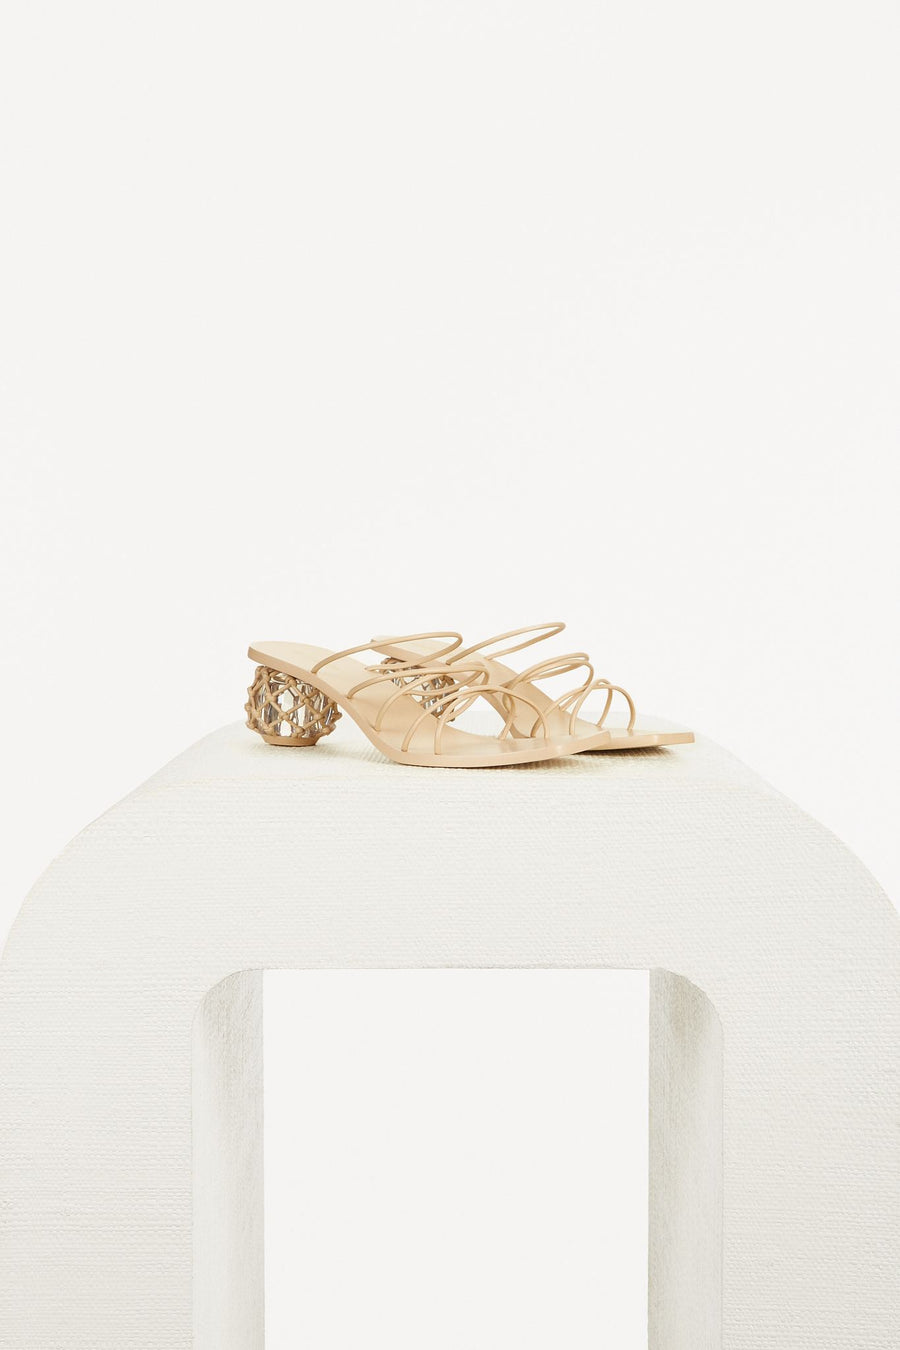 KELLY SANDAL - SAND